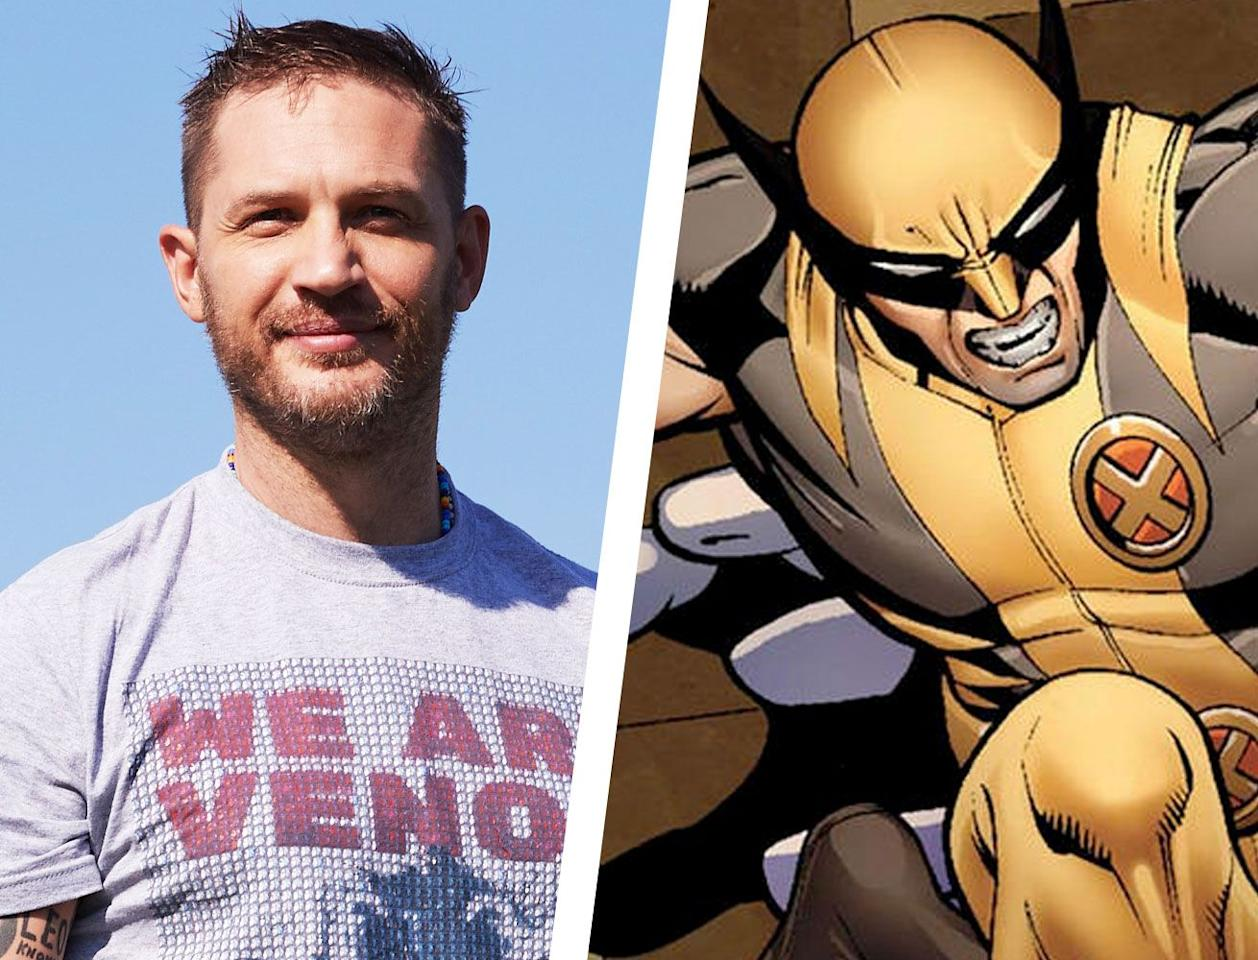 """<p>Tom Hardy may already have a few superhero roles under his belt—he played the villainous Bane in Christopher Nolan's <em>The Dark Knight Rises</em>, and his campy take on <em>Venom</em> last year was actually a lot of fun—but what's one more? He was actually <a href=""""https://www.digitalspy.com/movies/a27677892/x-men-tom-hardy-richard-madden-new-wolverine/"""" target=""""_blank"""">name-dropped</a> as a good choice for the role (along with <em>Game of Thrones </em>star Richard Madden) by <em>Dark Phoenix </em>director Simon Kinberg, raising some eyebrows for sure. <em></em><em></em></p><p>While it might get a little confusing if Venom ever actually gets <a href=""""http://collider.com/mcu-venom-rumor/"""" target=""""_blank"""">rolled into the MCU</a> (much like Tom Holland's Spider-Man did), Hardy would bring an aggressive attitude to the role, and as always, would have no reservation about fully immersing himself and disappearing into the role. Hardy is one of our best actors, and if he's excited about a project, you know it's one to look forward to.</p>"""